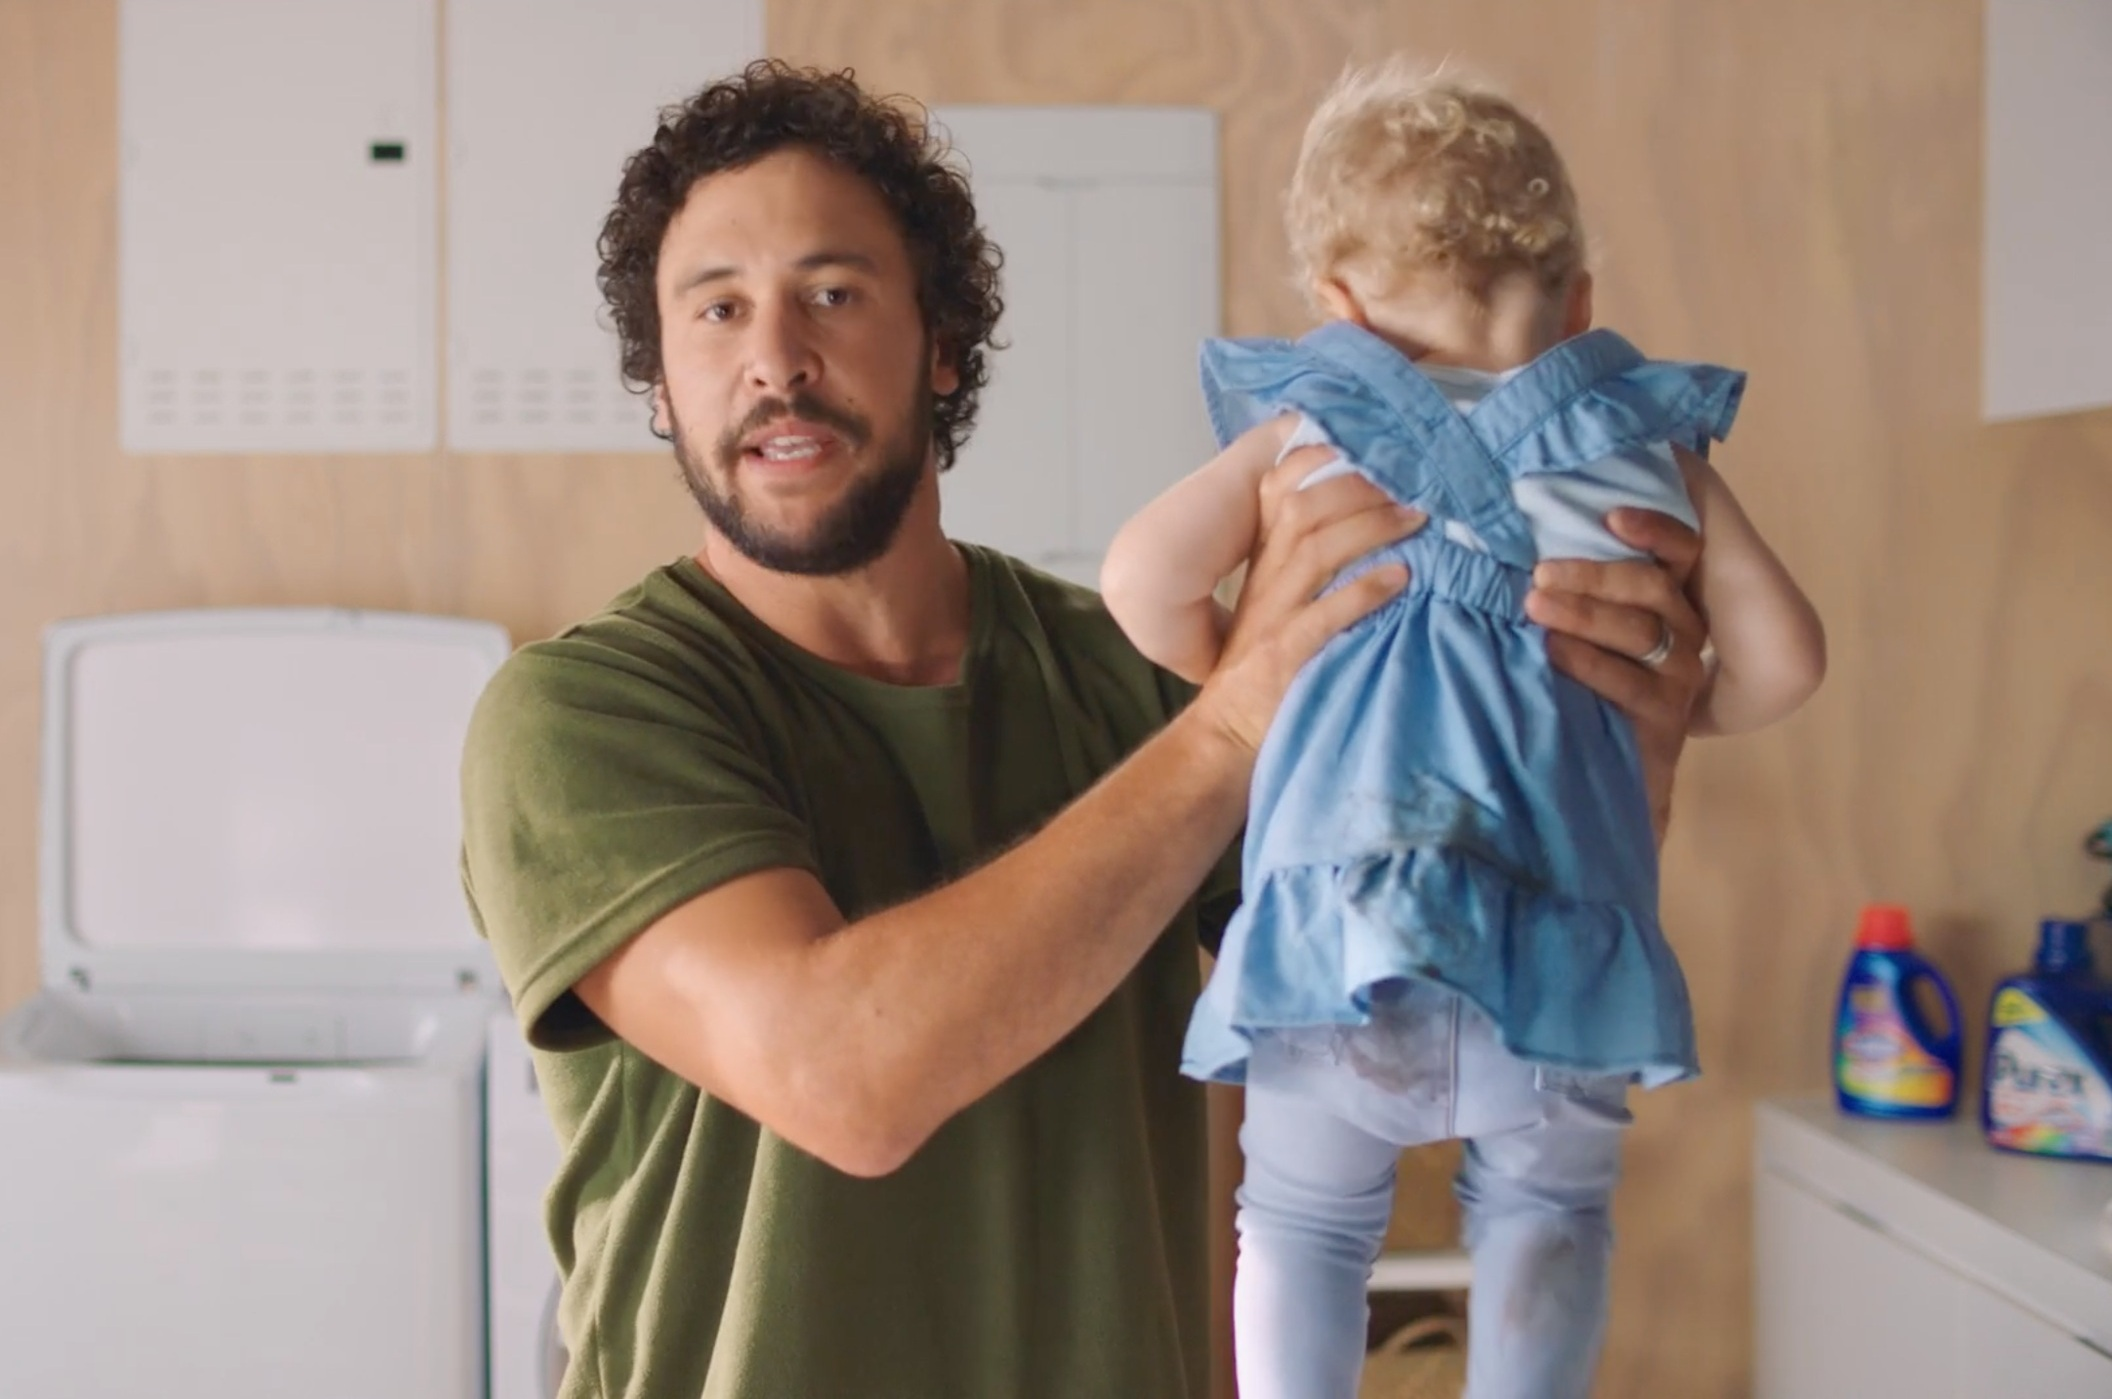 Dads do laundry! Feminism's working! - Purex - The Smart Way to Do Laundry